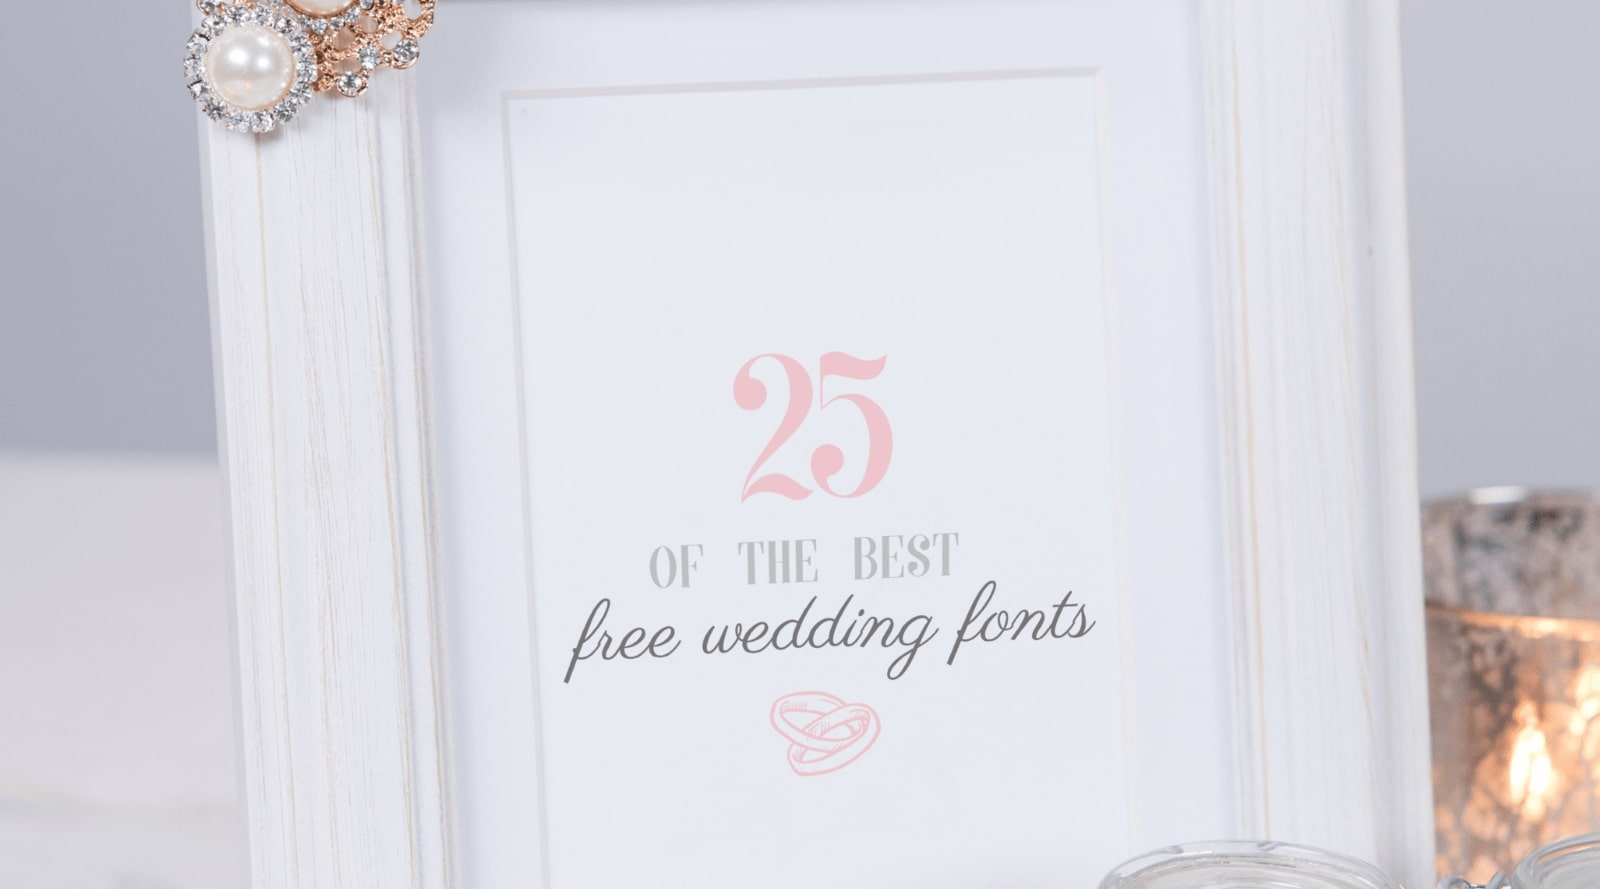 25 of the best free wedding fonts